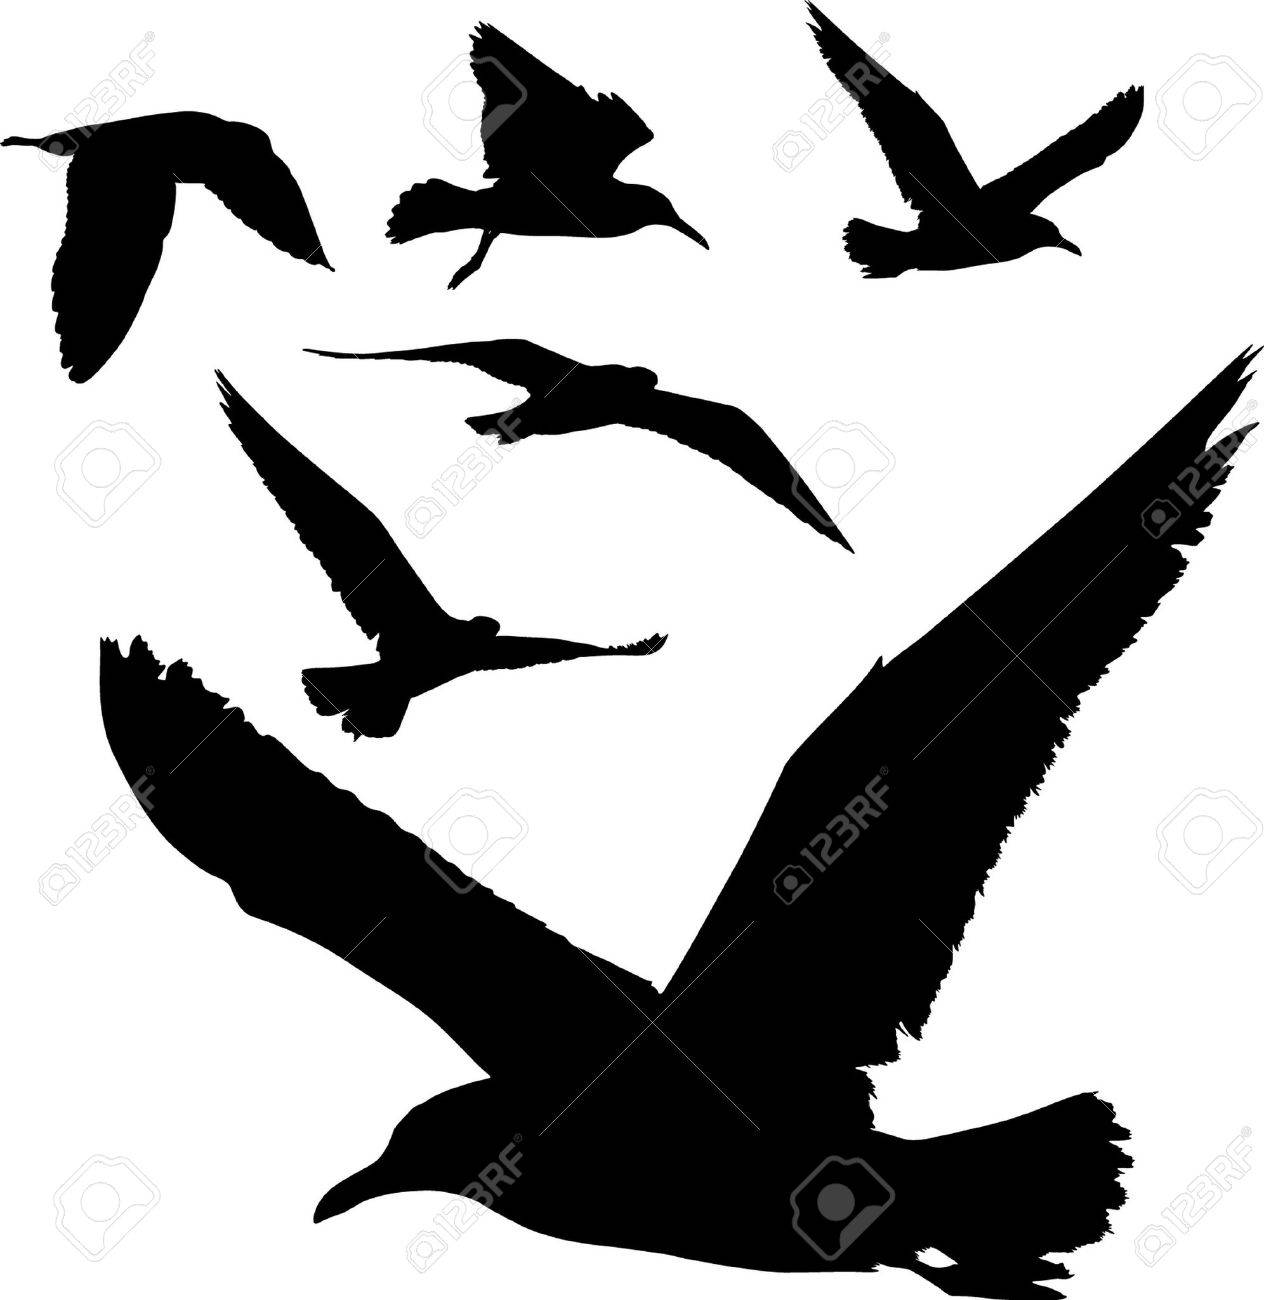 Some silhouettes of seagulls flying Stock Vector - 2757324